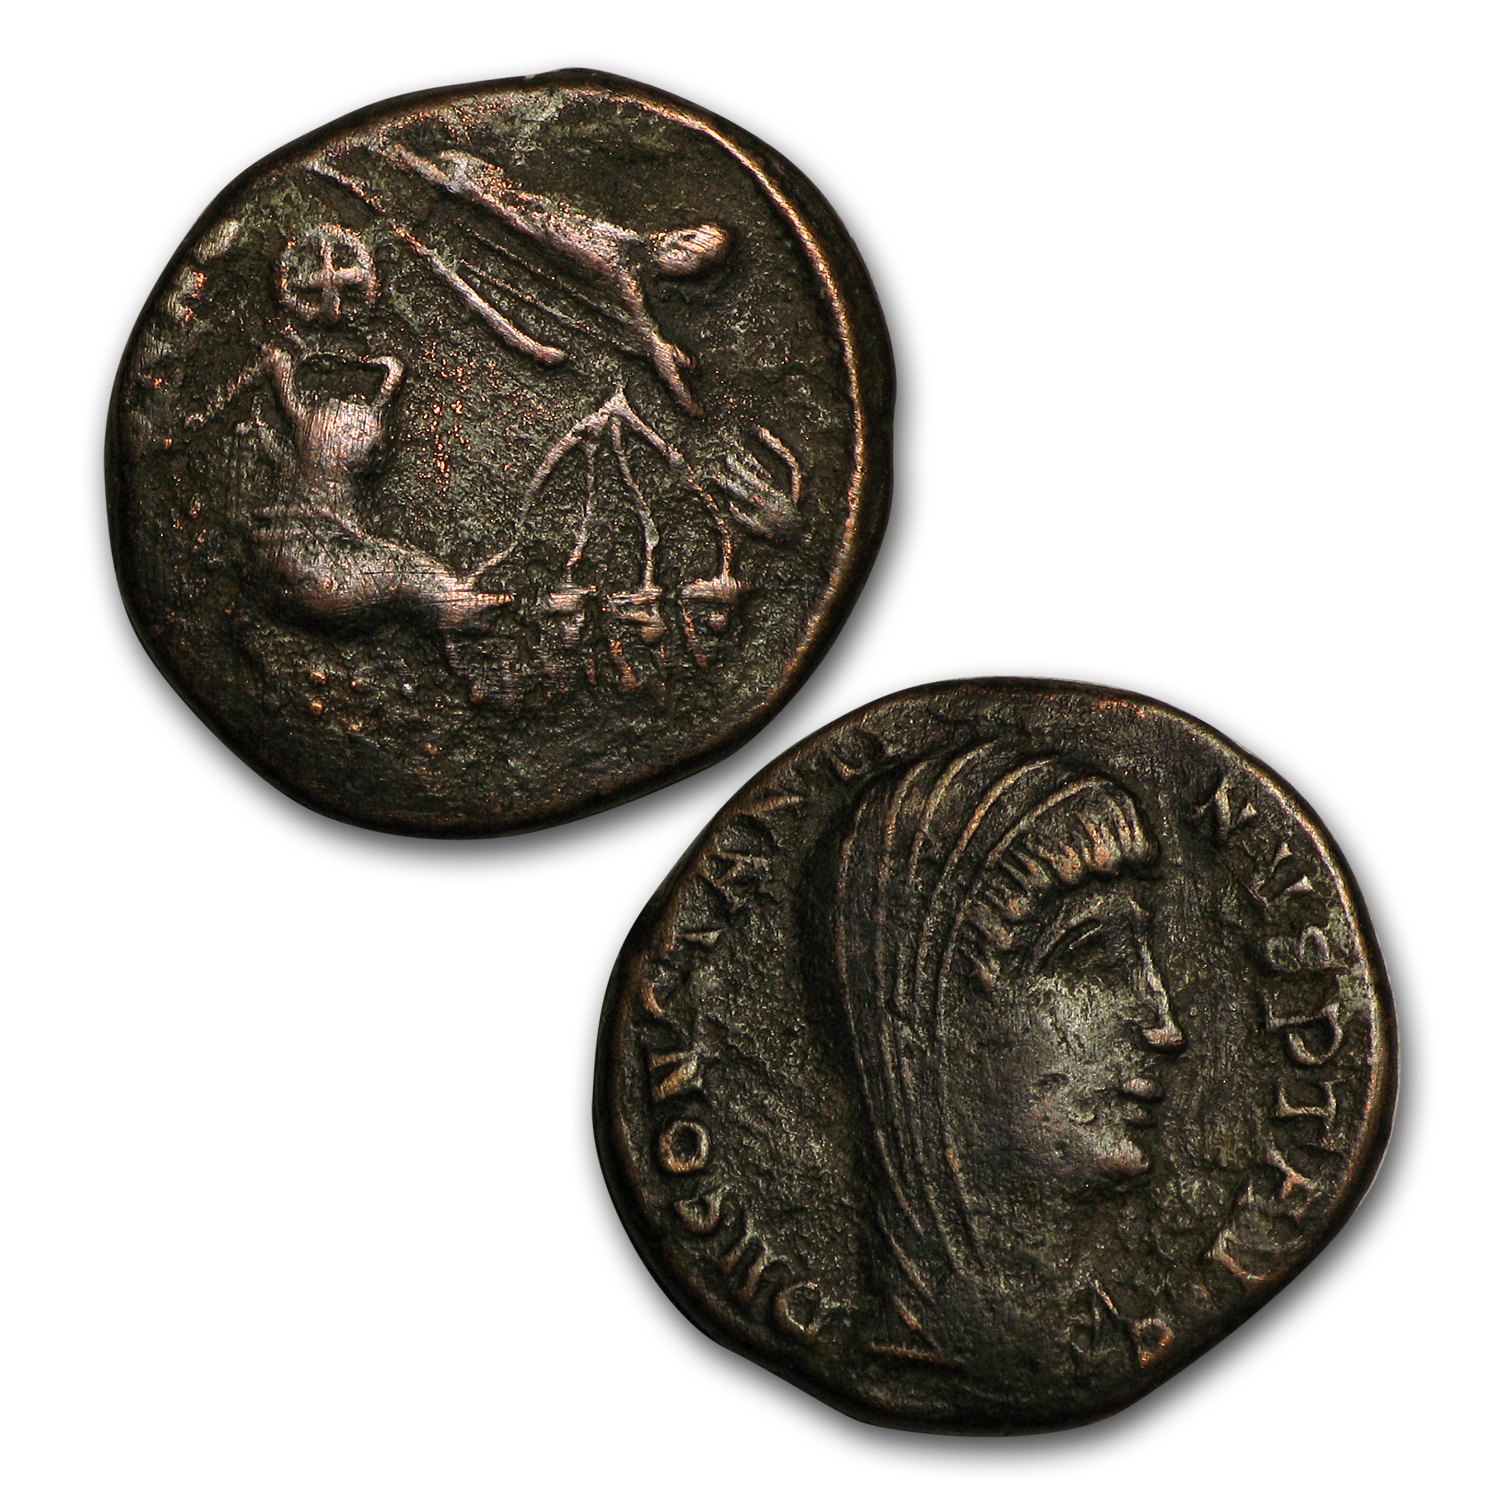 6-Coin Collection Monumental Figures in Christianity